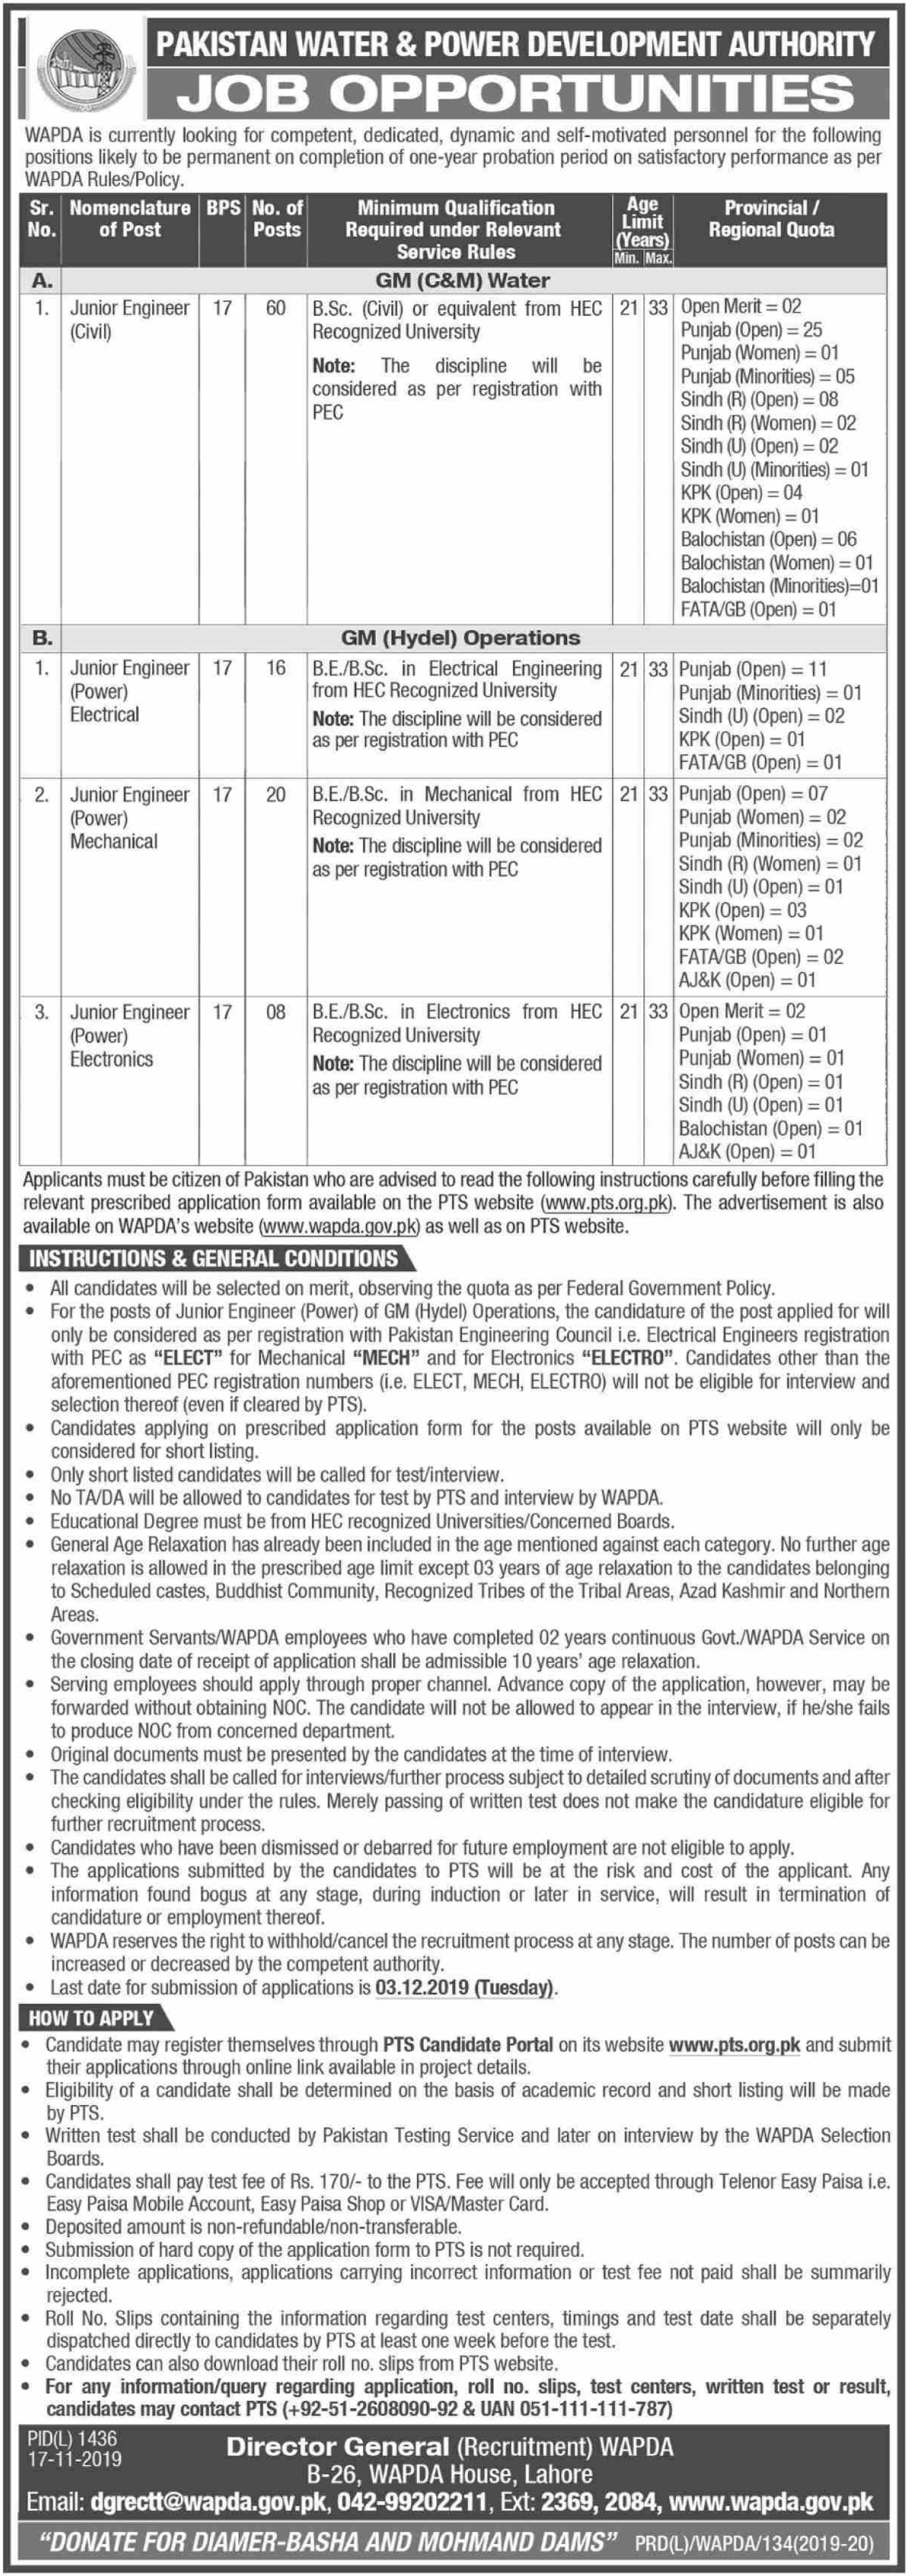 Wapda Junior Engineer Jobs 2019 Pakistan Water & Power Development Authority